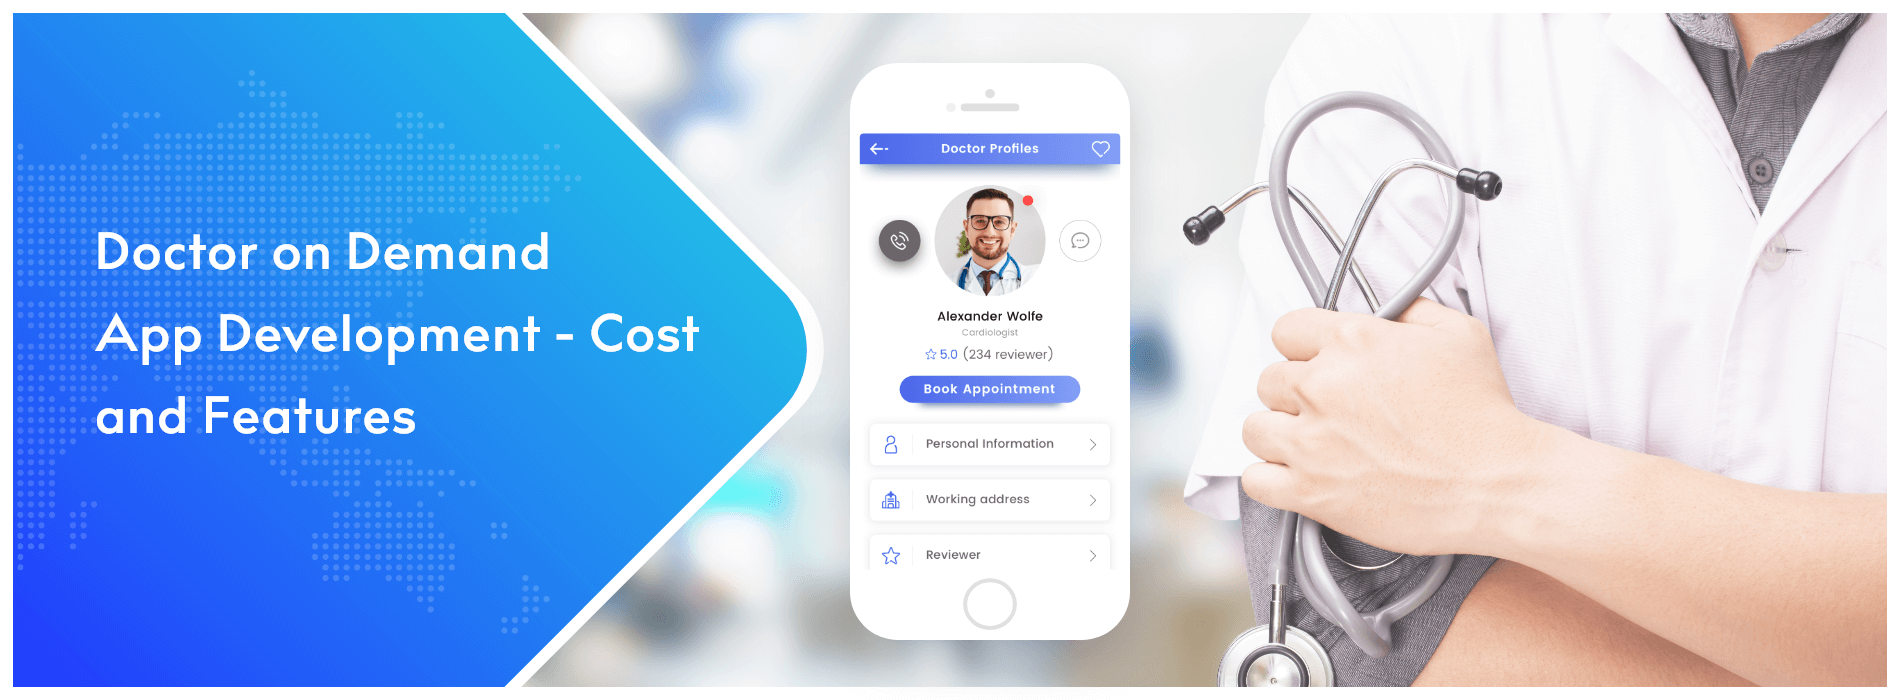 On-demand doctor app - cost & key features